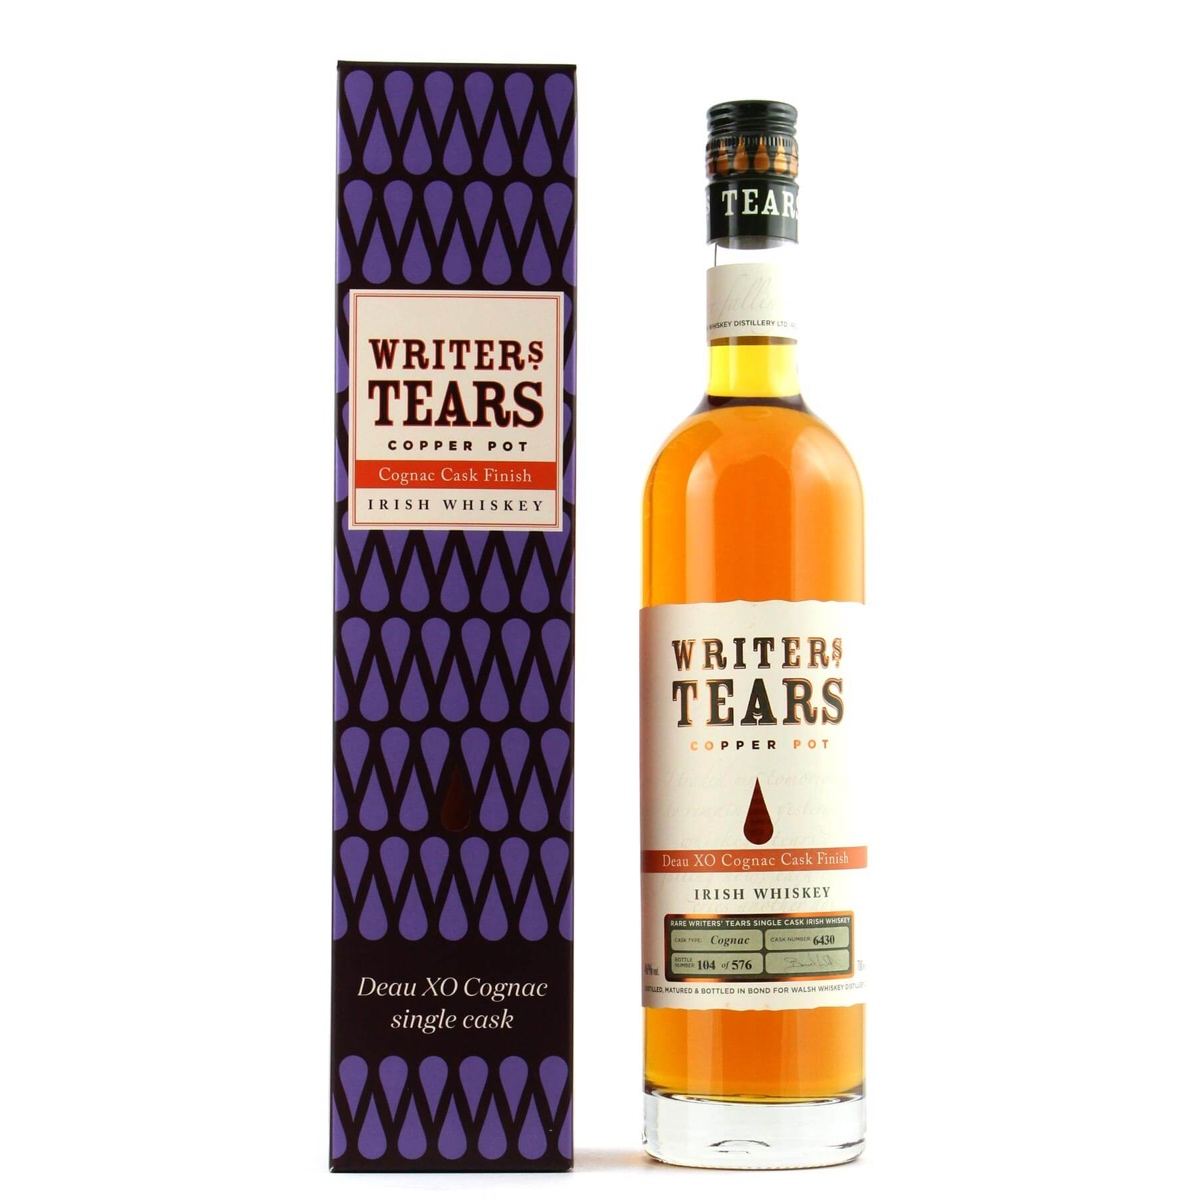 writers-tears-cognac-cask-finish-irish-whiskey-0-7l-27039-20299